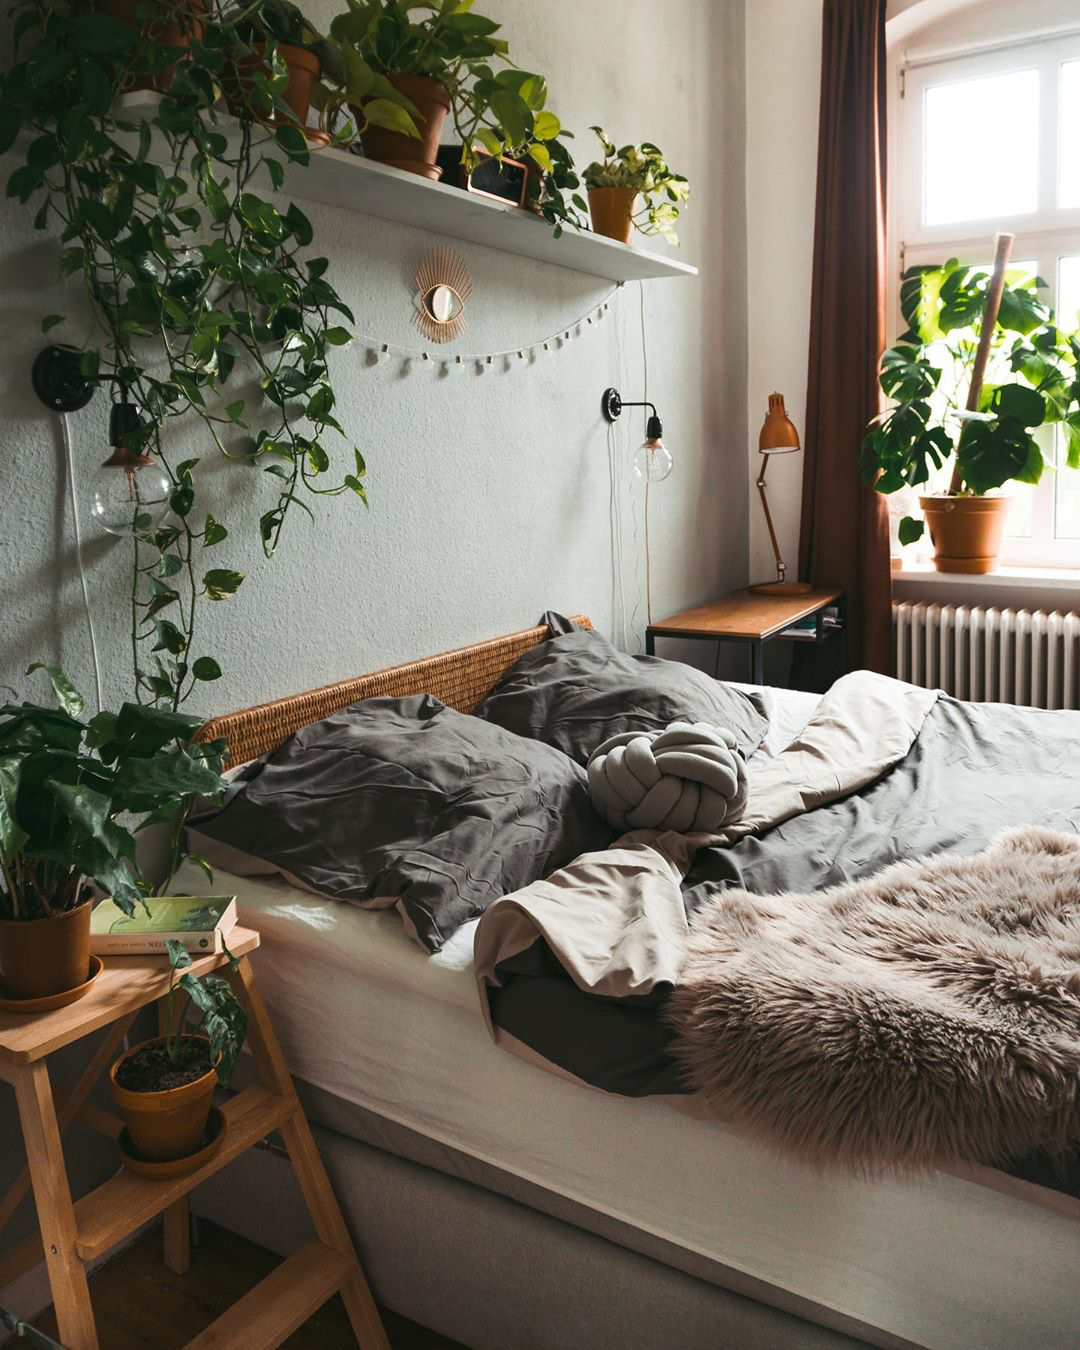 Gorgeous plants for the bedroom